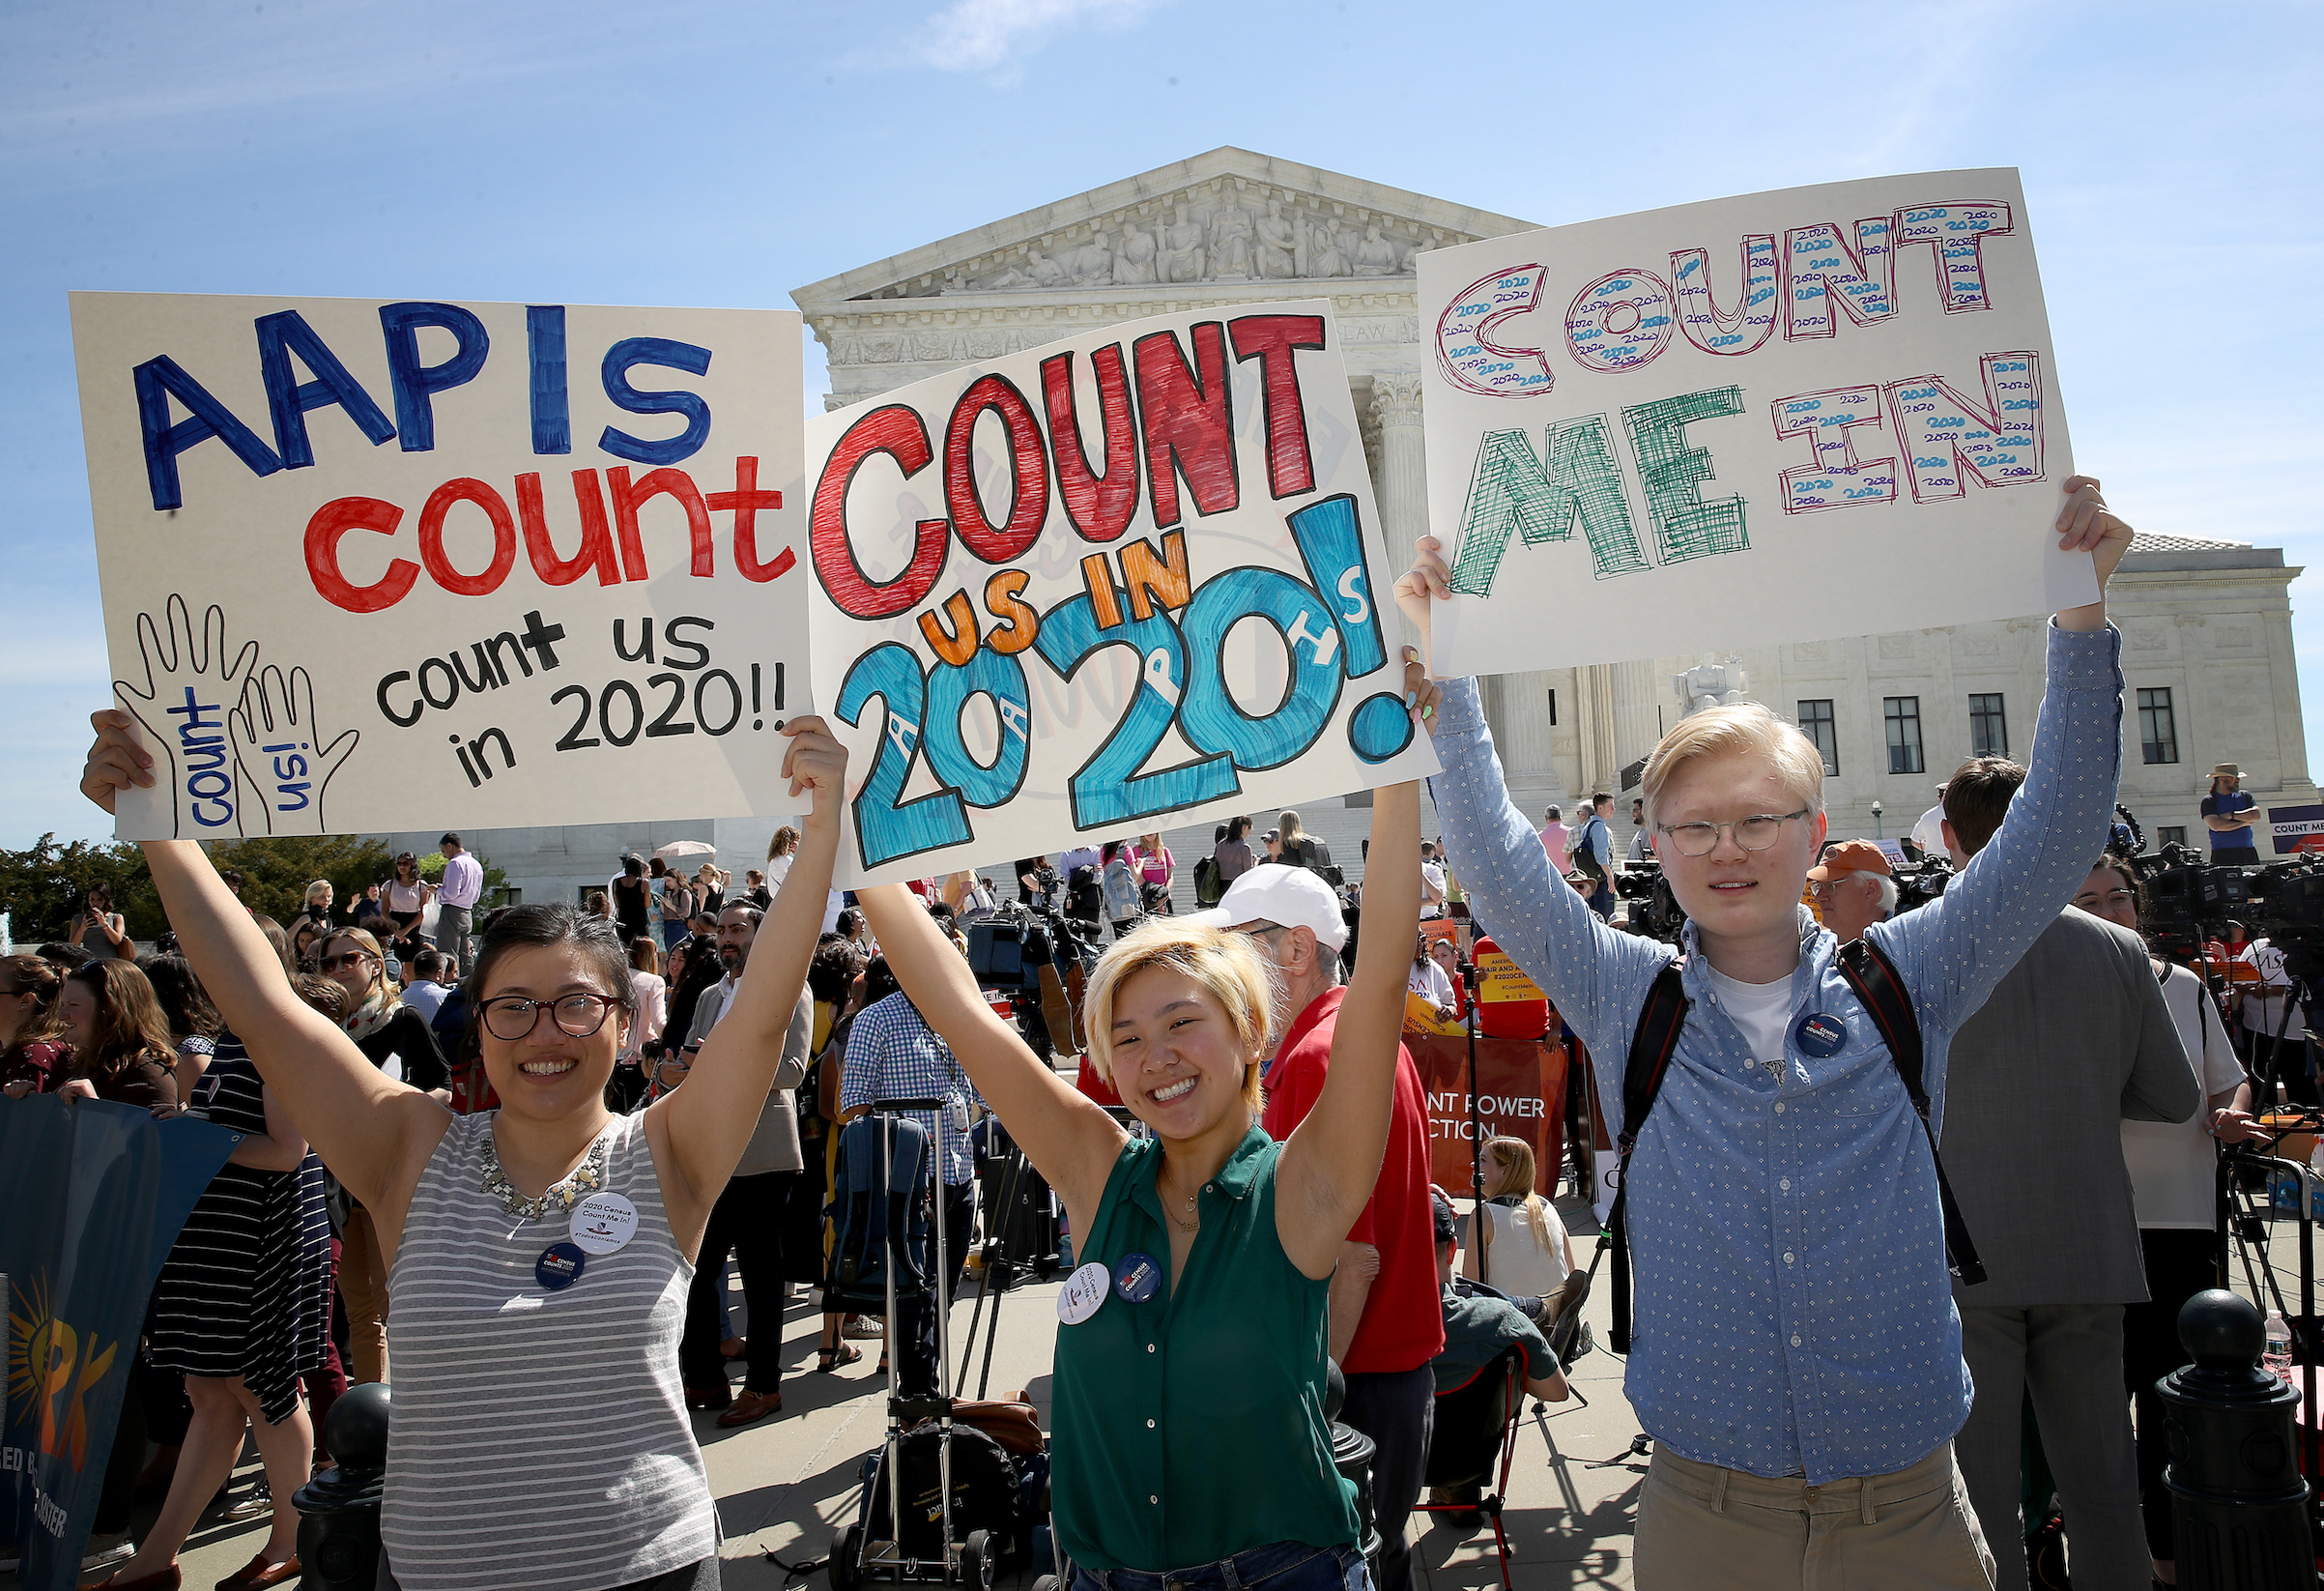 Protesters gather outside the U.S. Supreme Court as the court hears oral arguments in a Census-related case on April 23, 2019 in Washington, D.C.